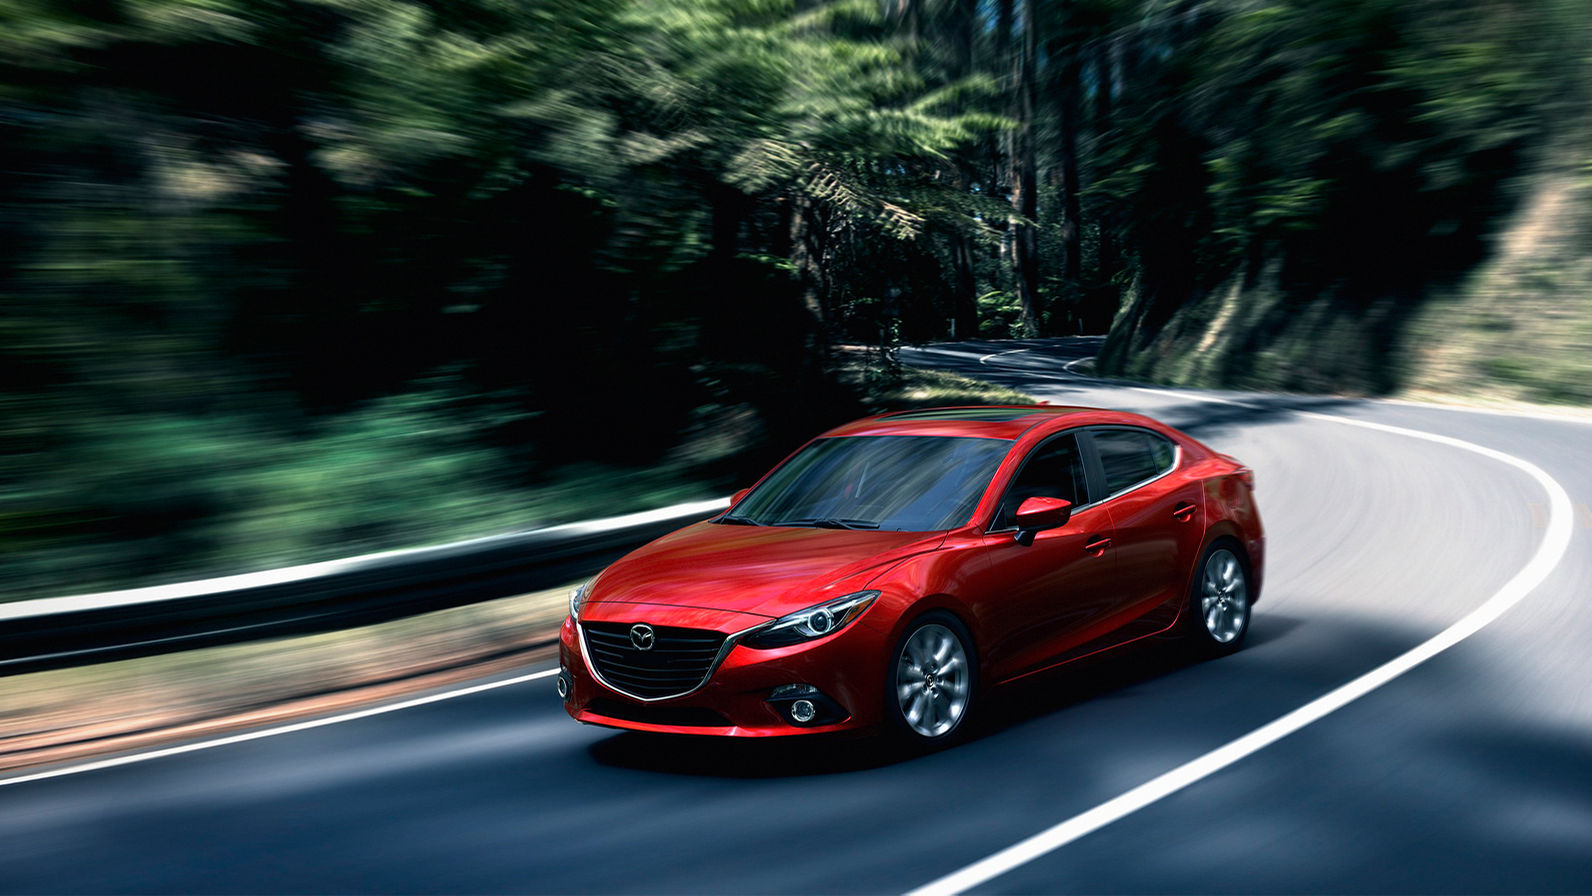 2016 Mazda3: The Perfect Vehicle for Discovering New Brunswick